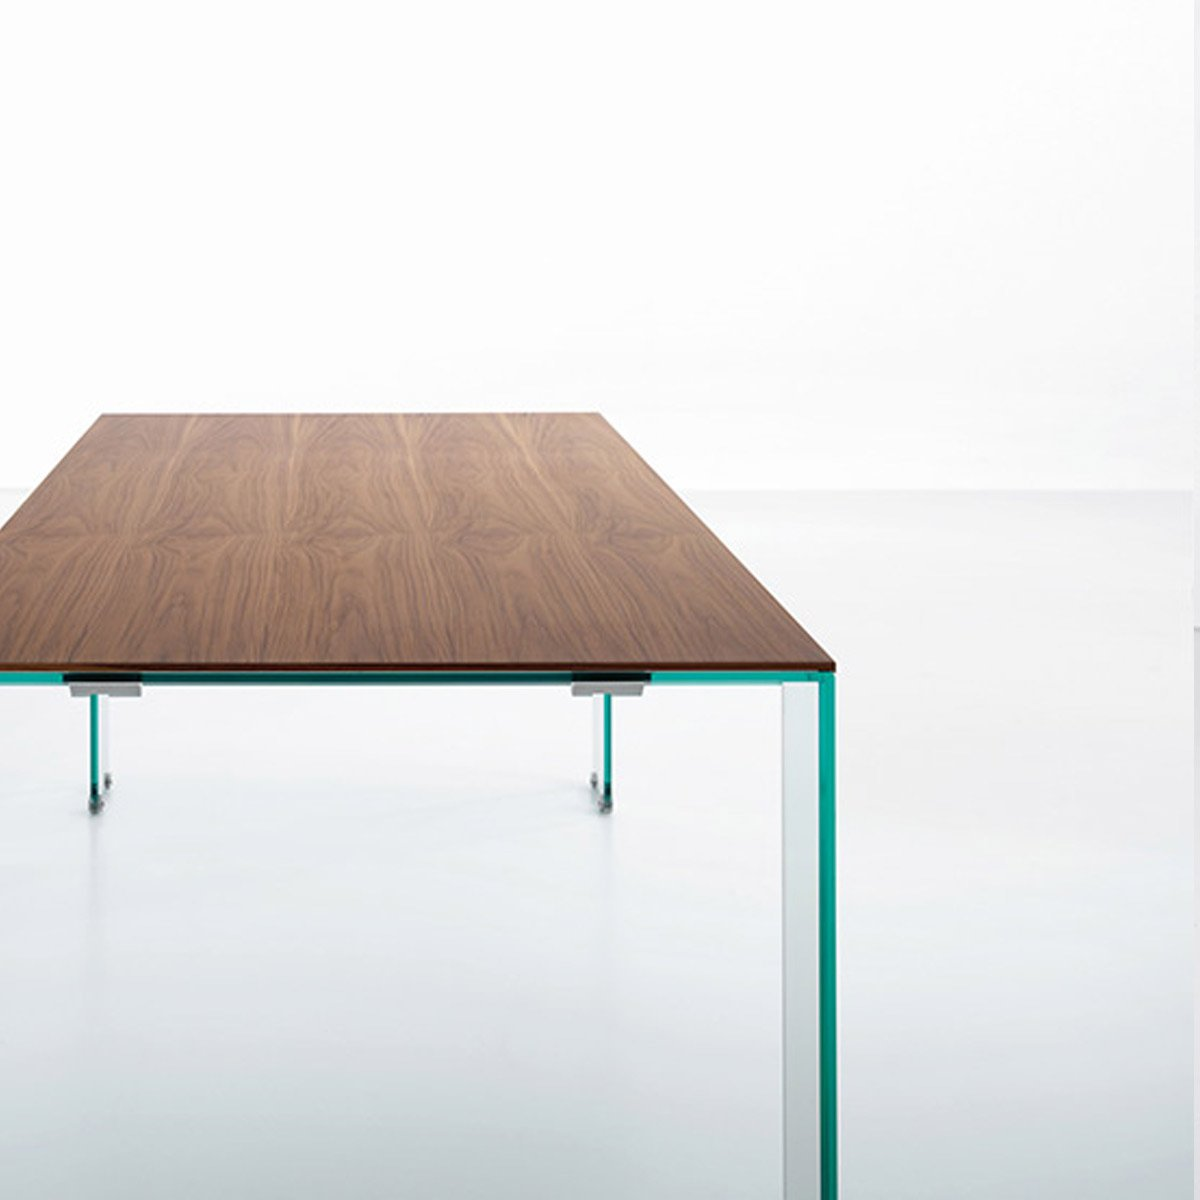 Aria wood and Glass dining table Extendable Klarity  : aria glass dining table miniform 2 from glassfurniture.co.uk size 1200 x 1200 jpeg 14kB